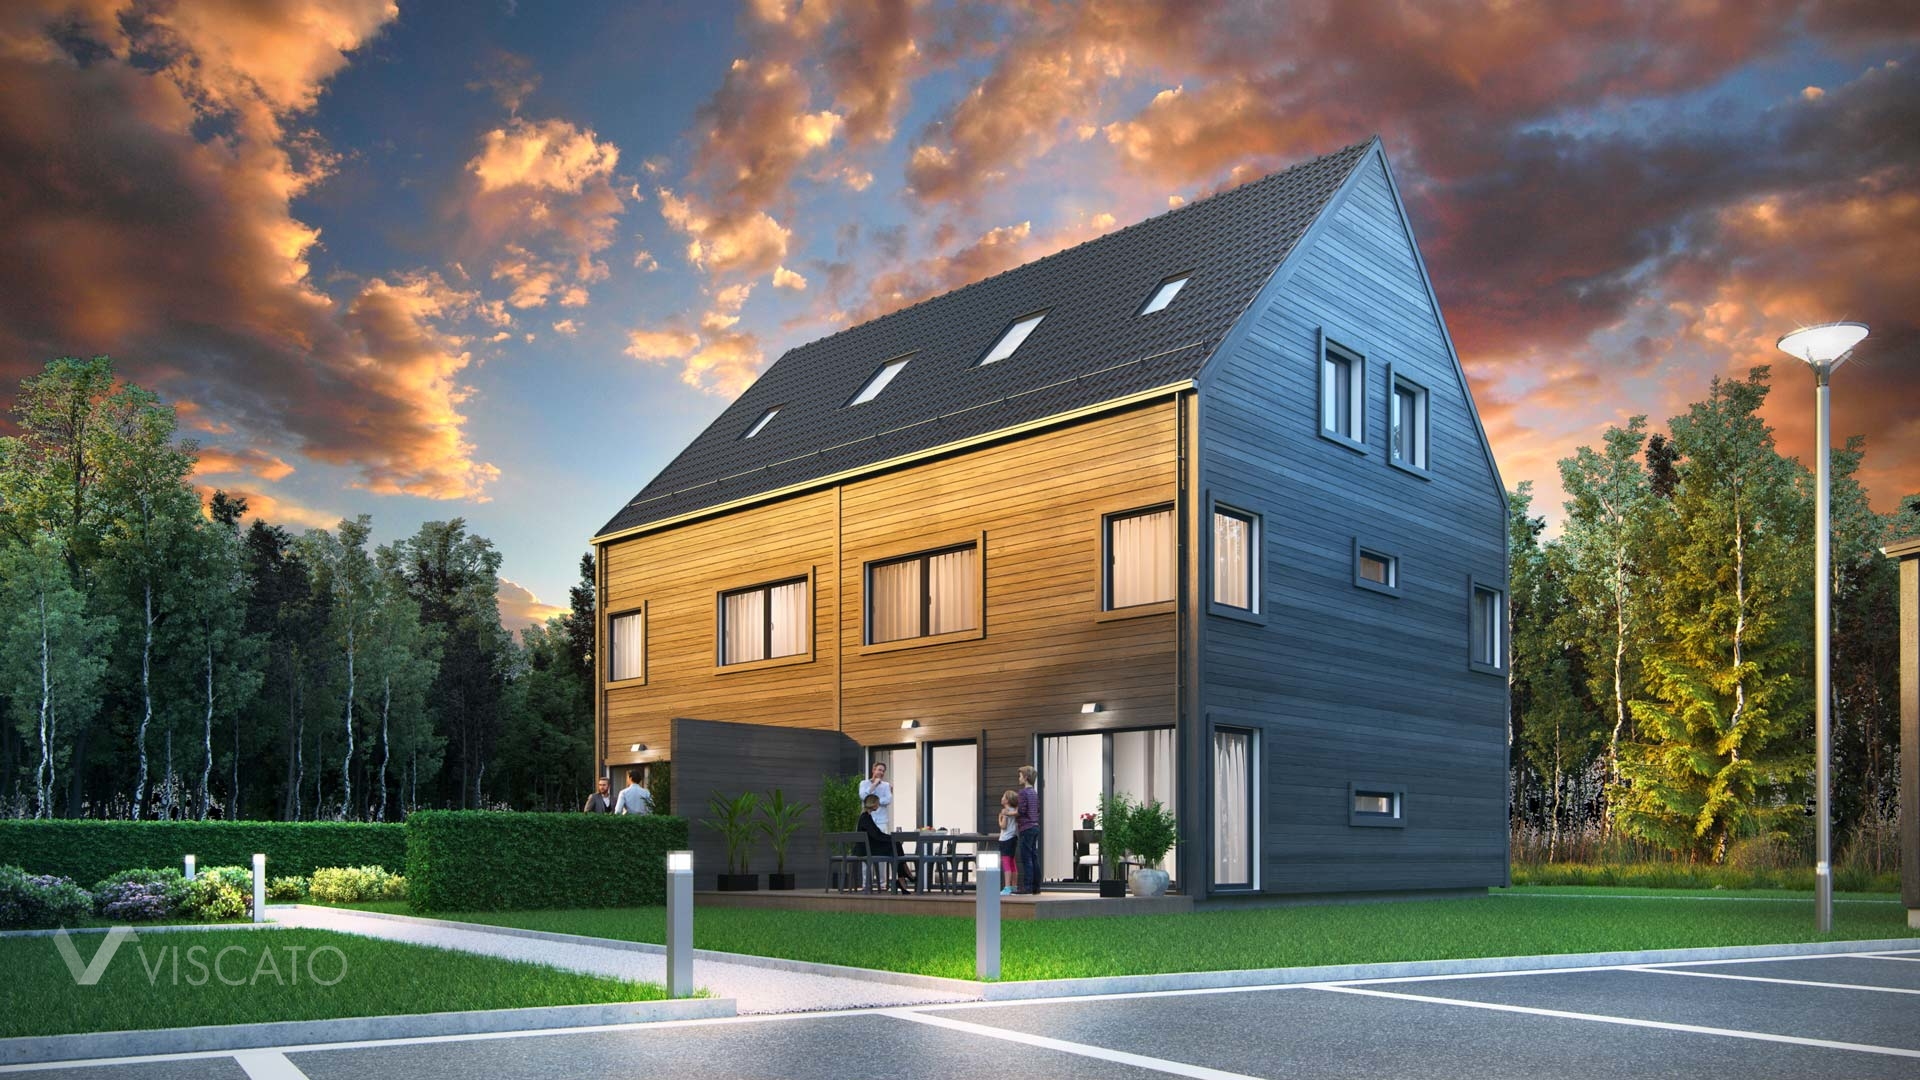 3D Visualization of a house with wooden siding- Viscato